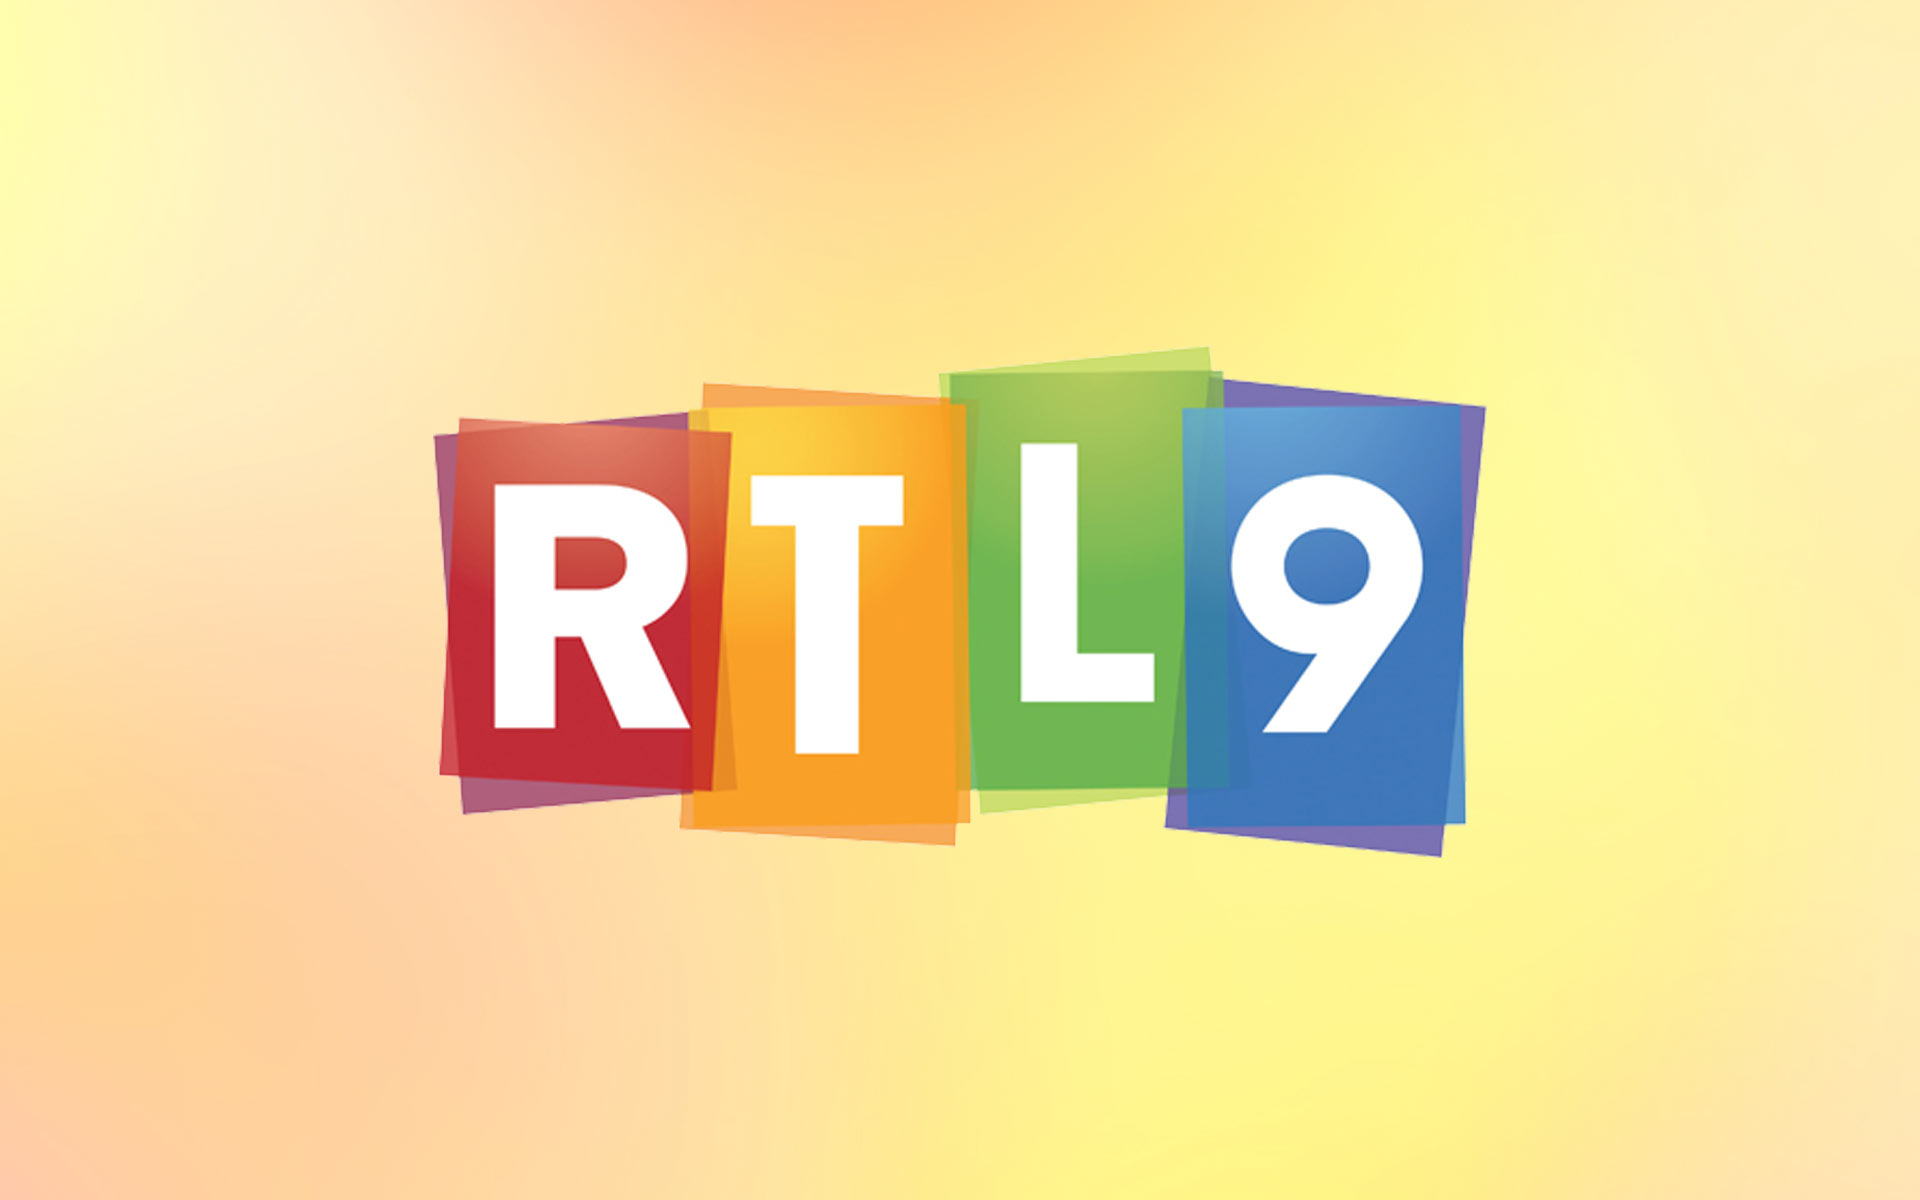 Logo RTL9 en direct